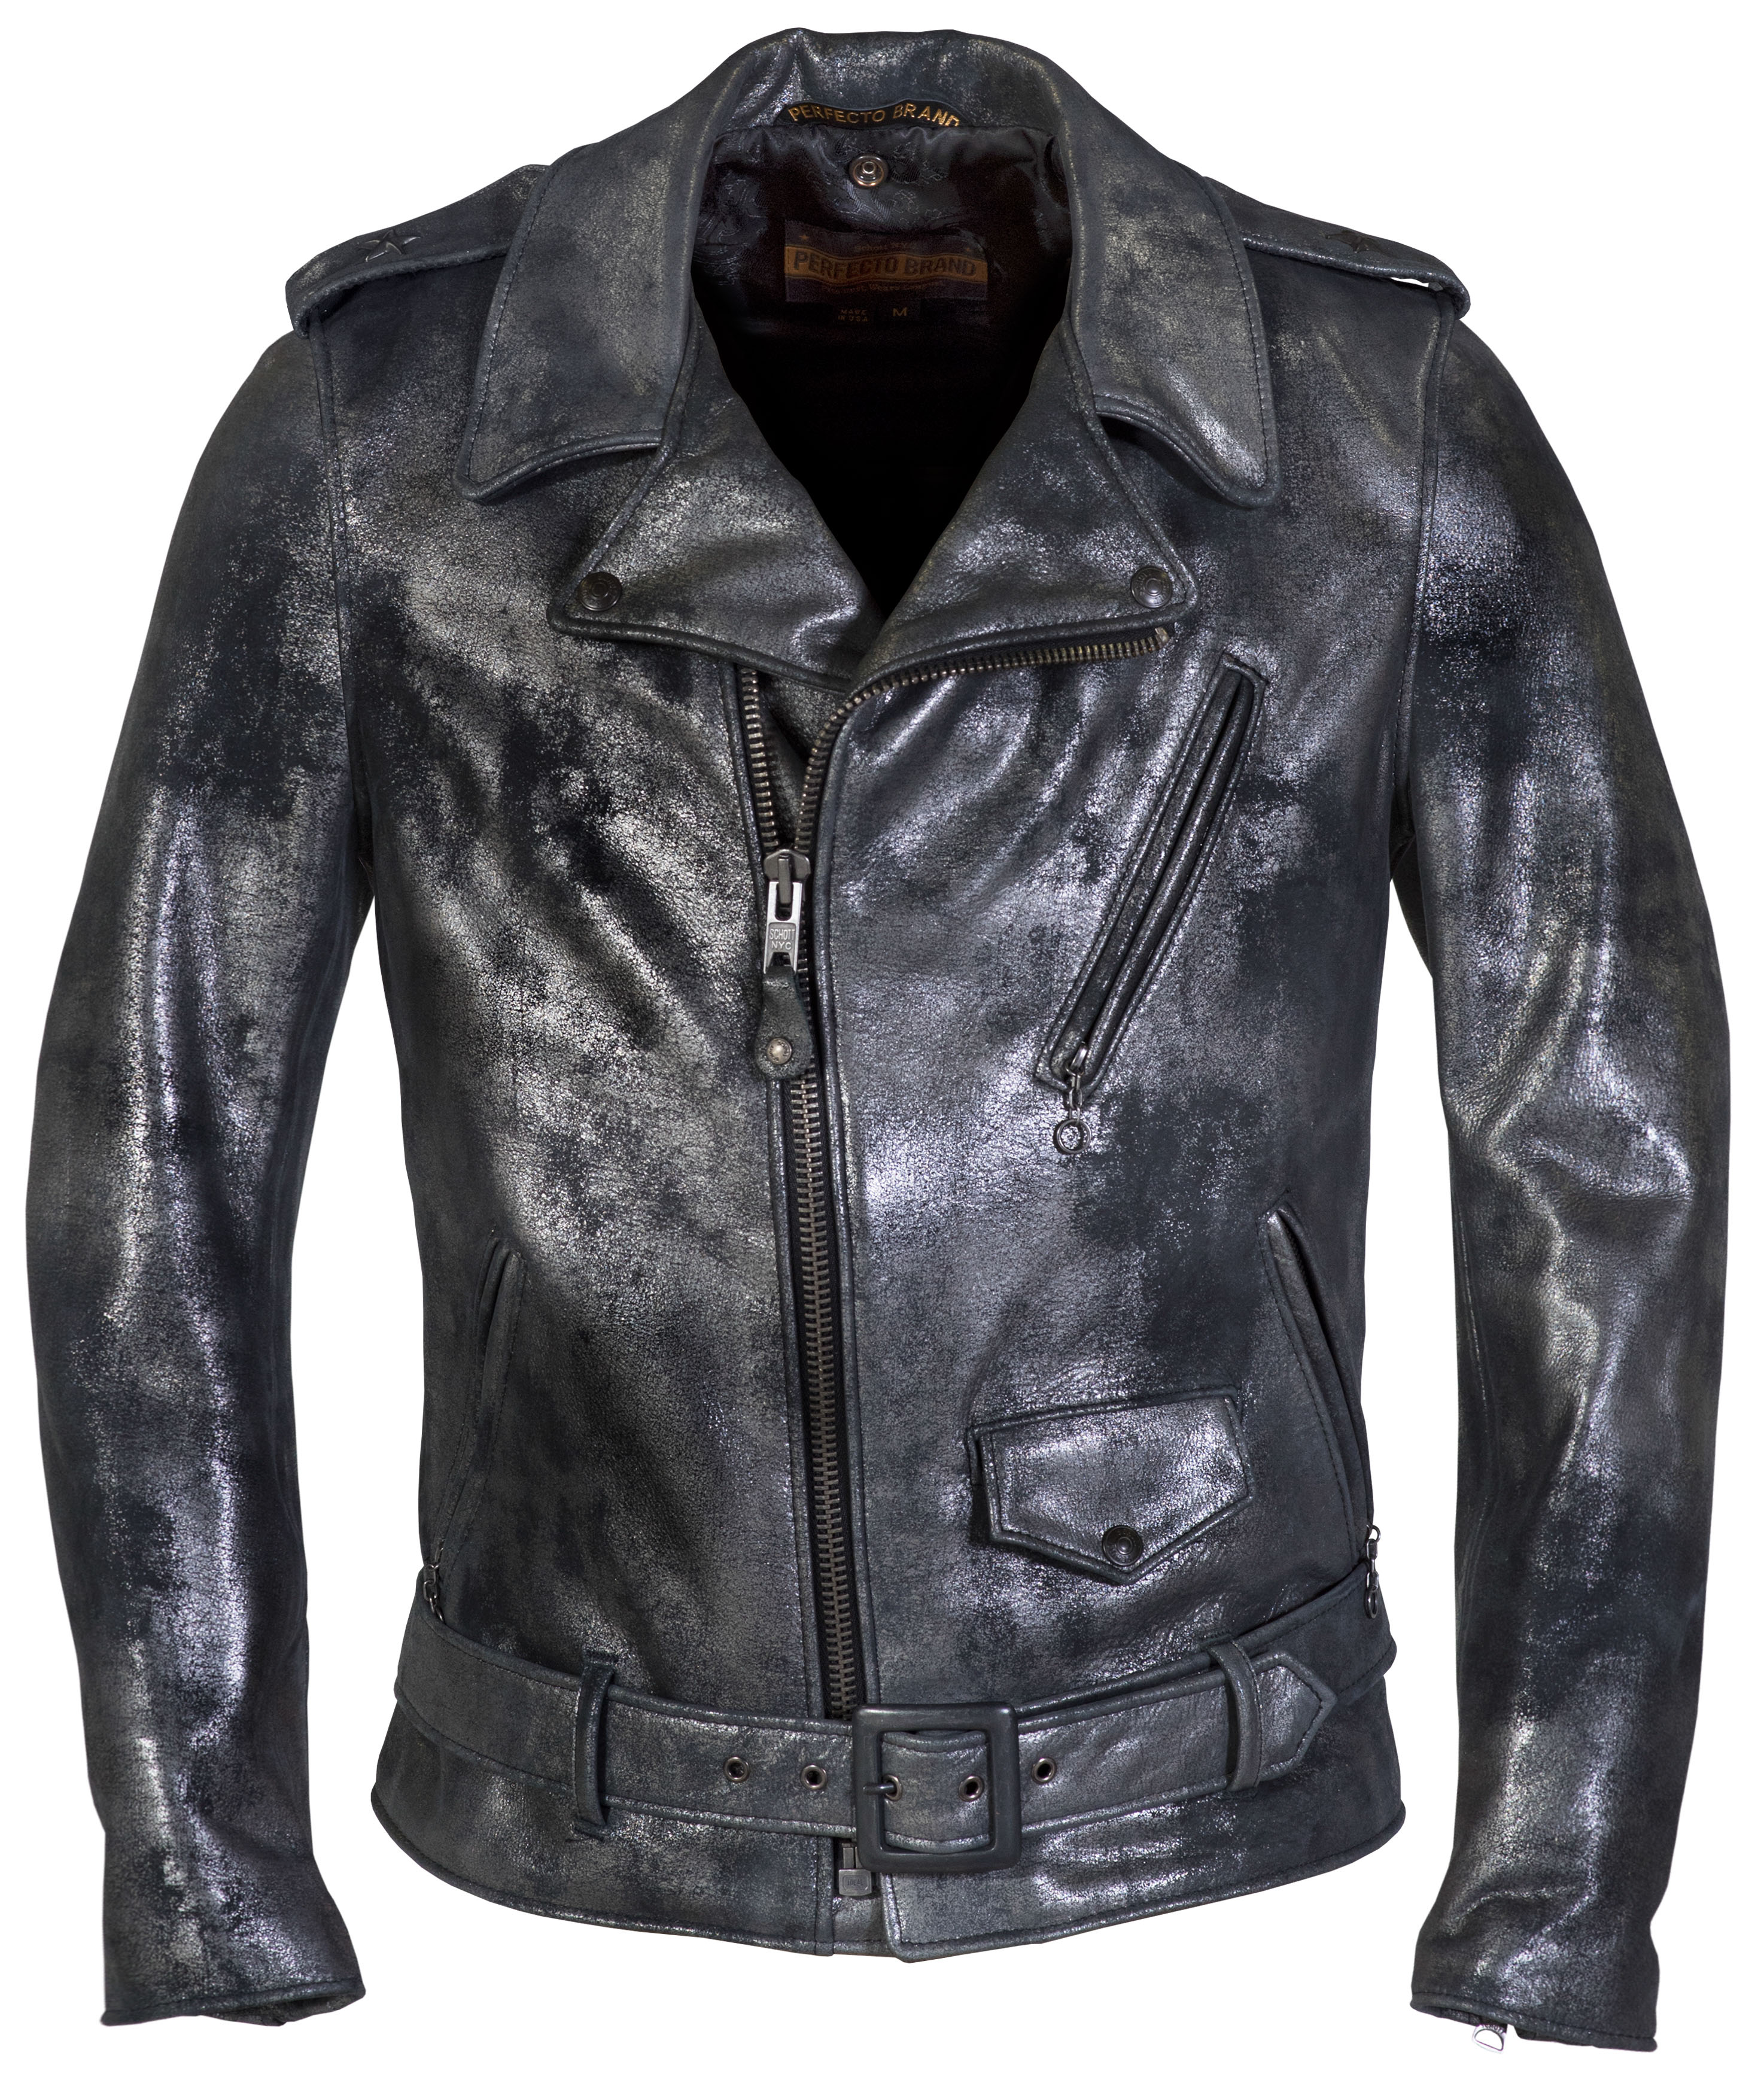 Perfecto® Brand P633 Rogue - Men's Leather Jacket